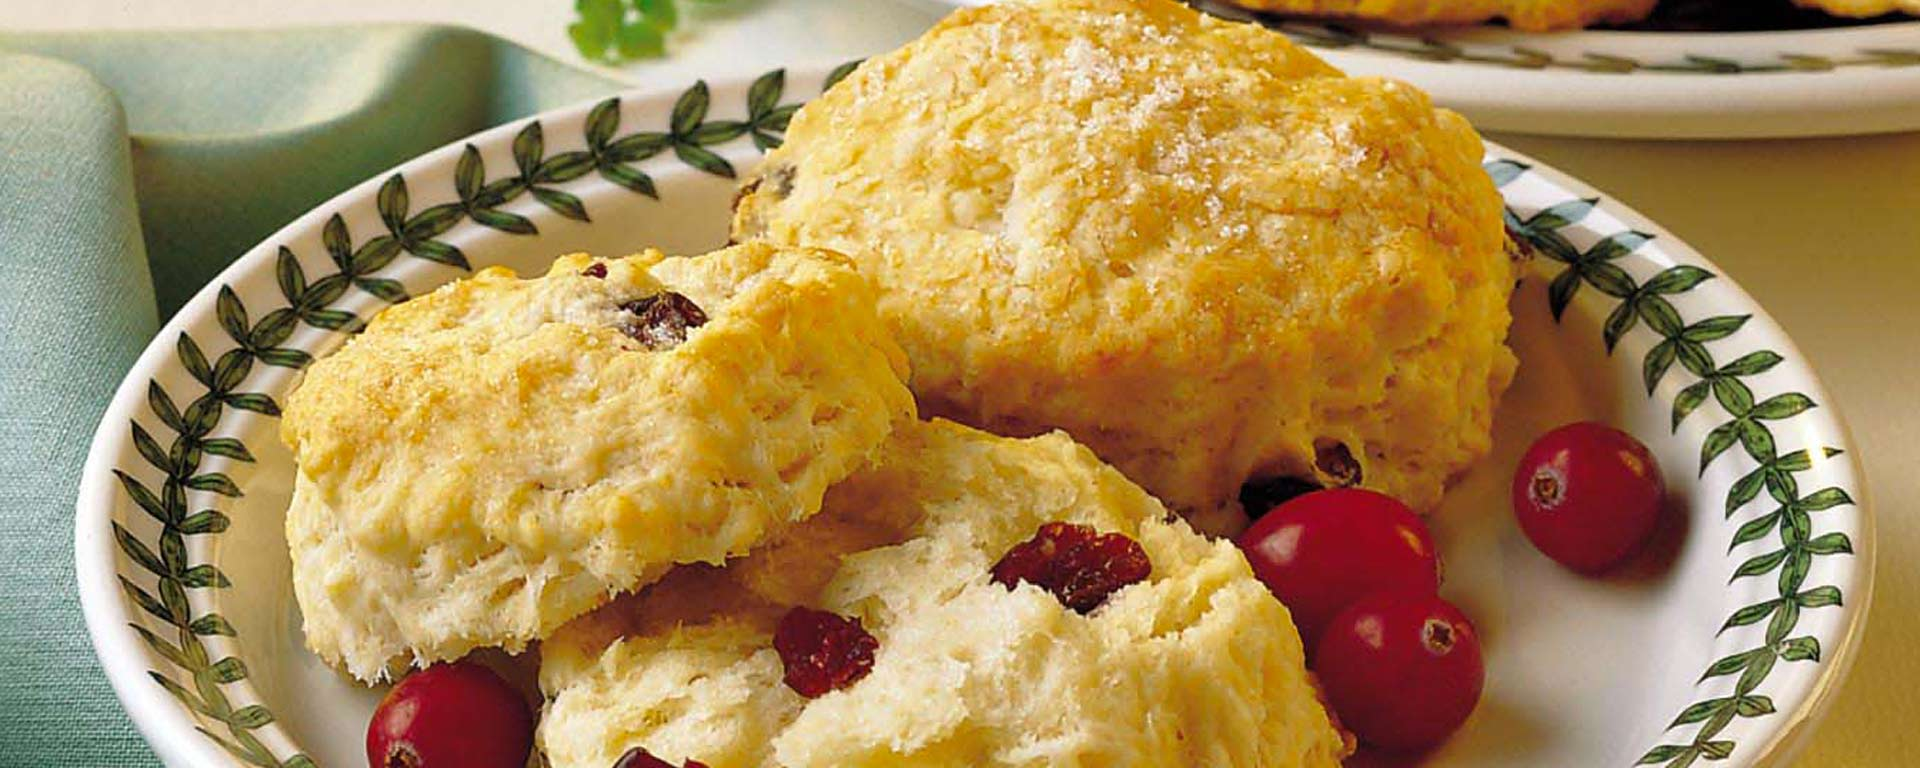 Photo for - Scones aux canneberges